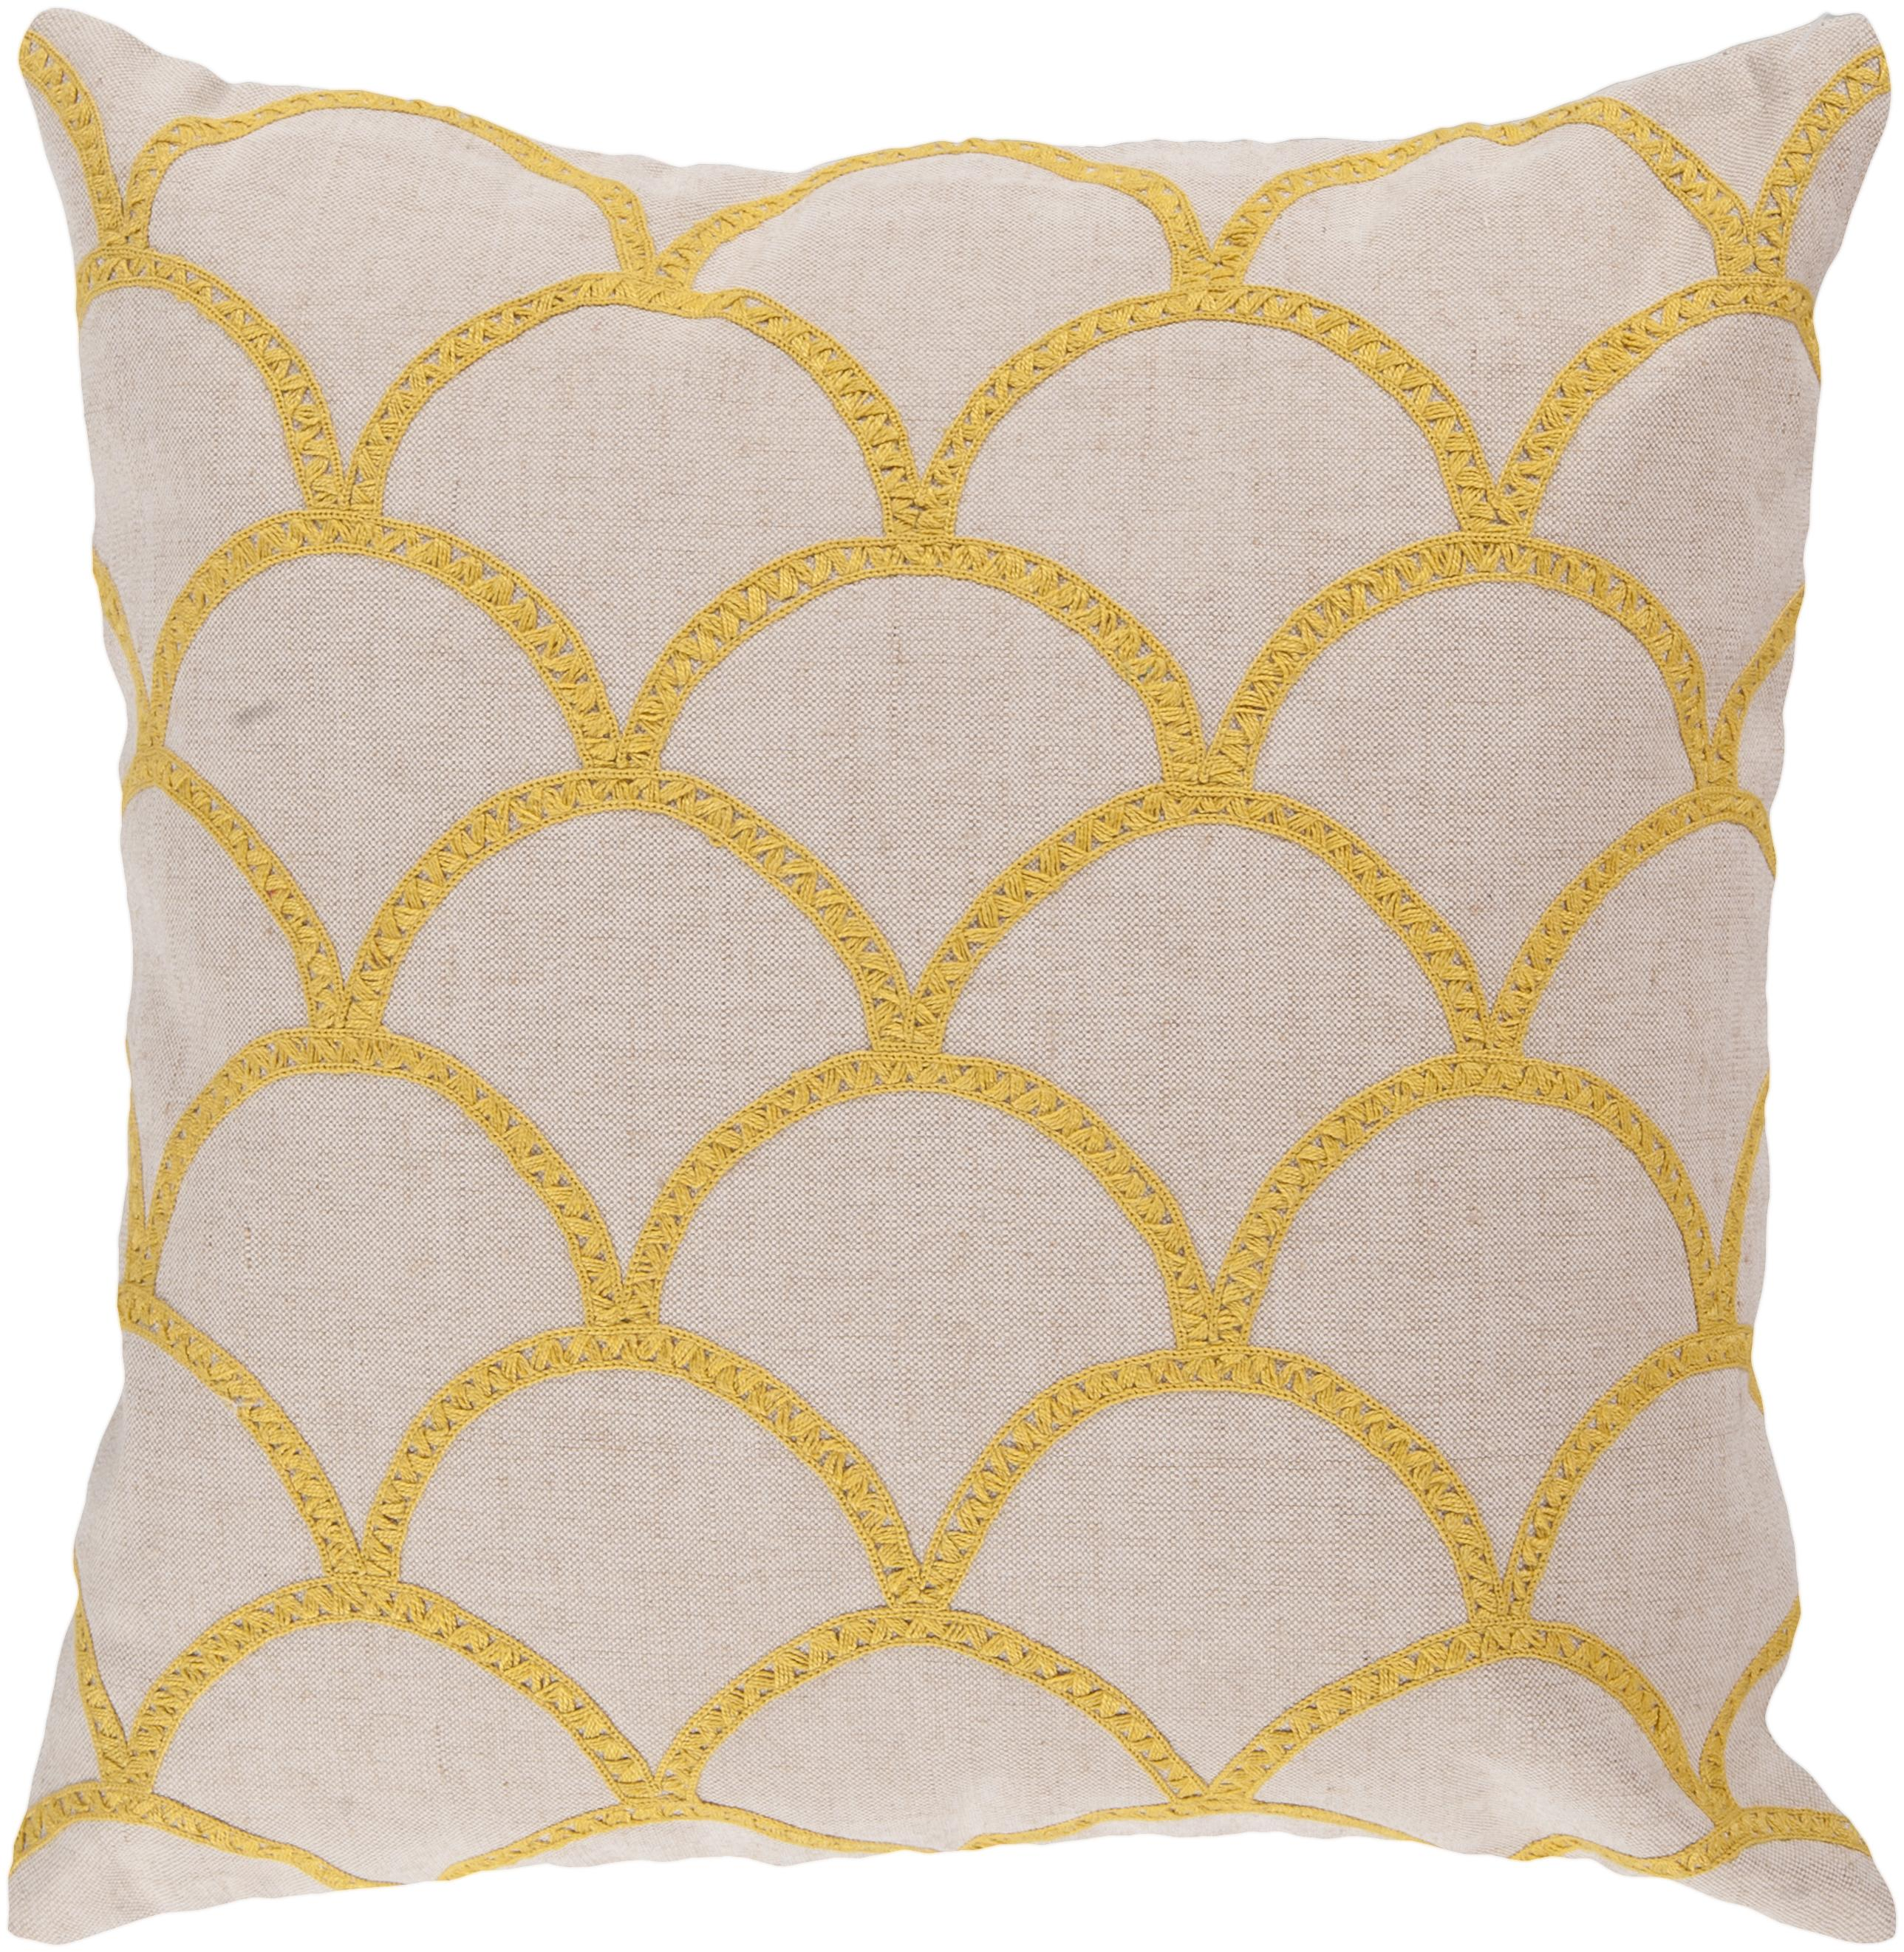 "Surya Pillows 18"" x 18"" Pillow - Item Number: COM010-1818P"